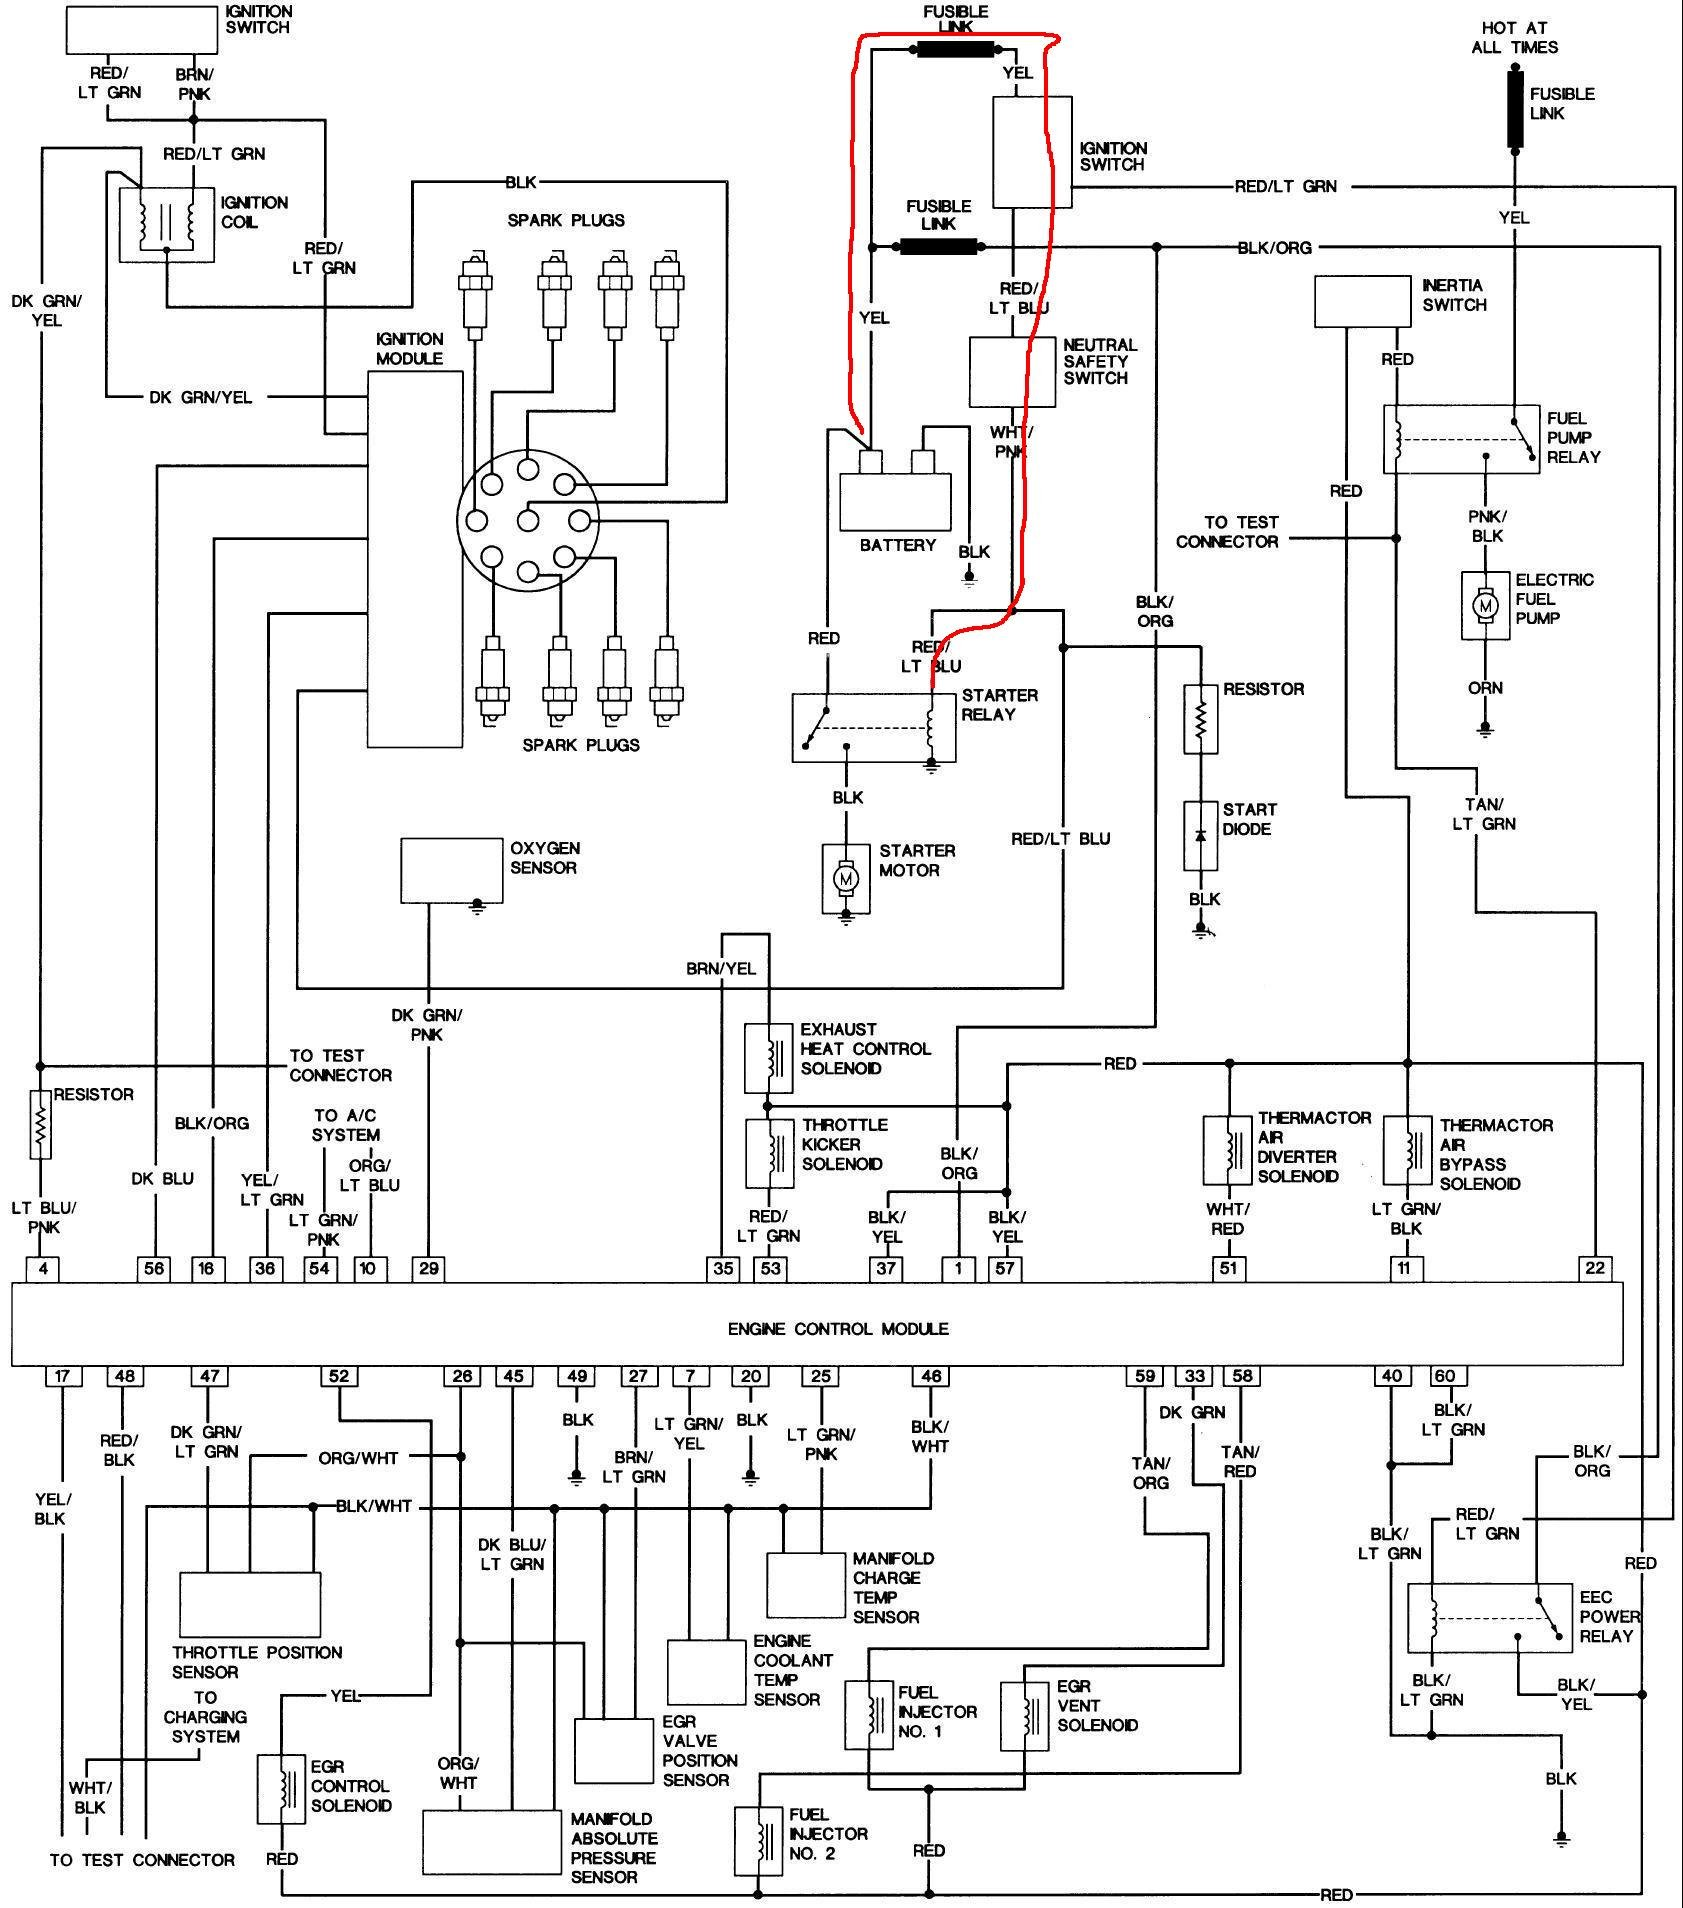 alternator wiring diagram for 1991 ford f 350 alternator 1969 mustang starter solenoid wiring